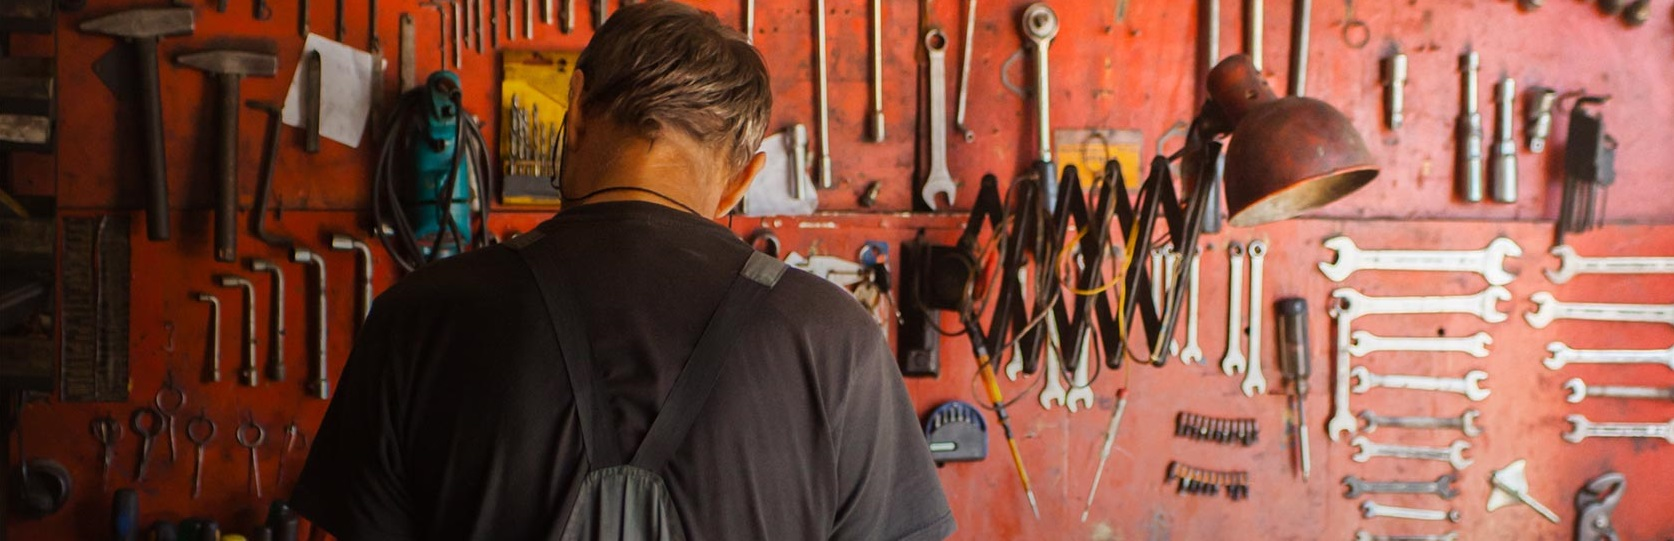 Man-With-Tools1.jpg